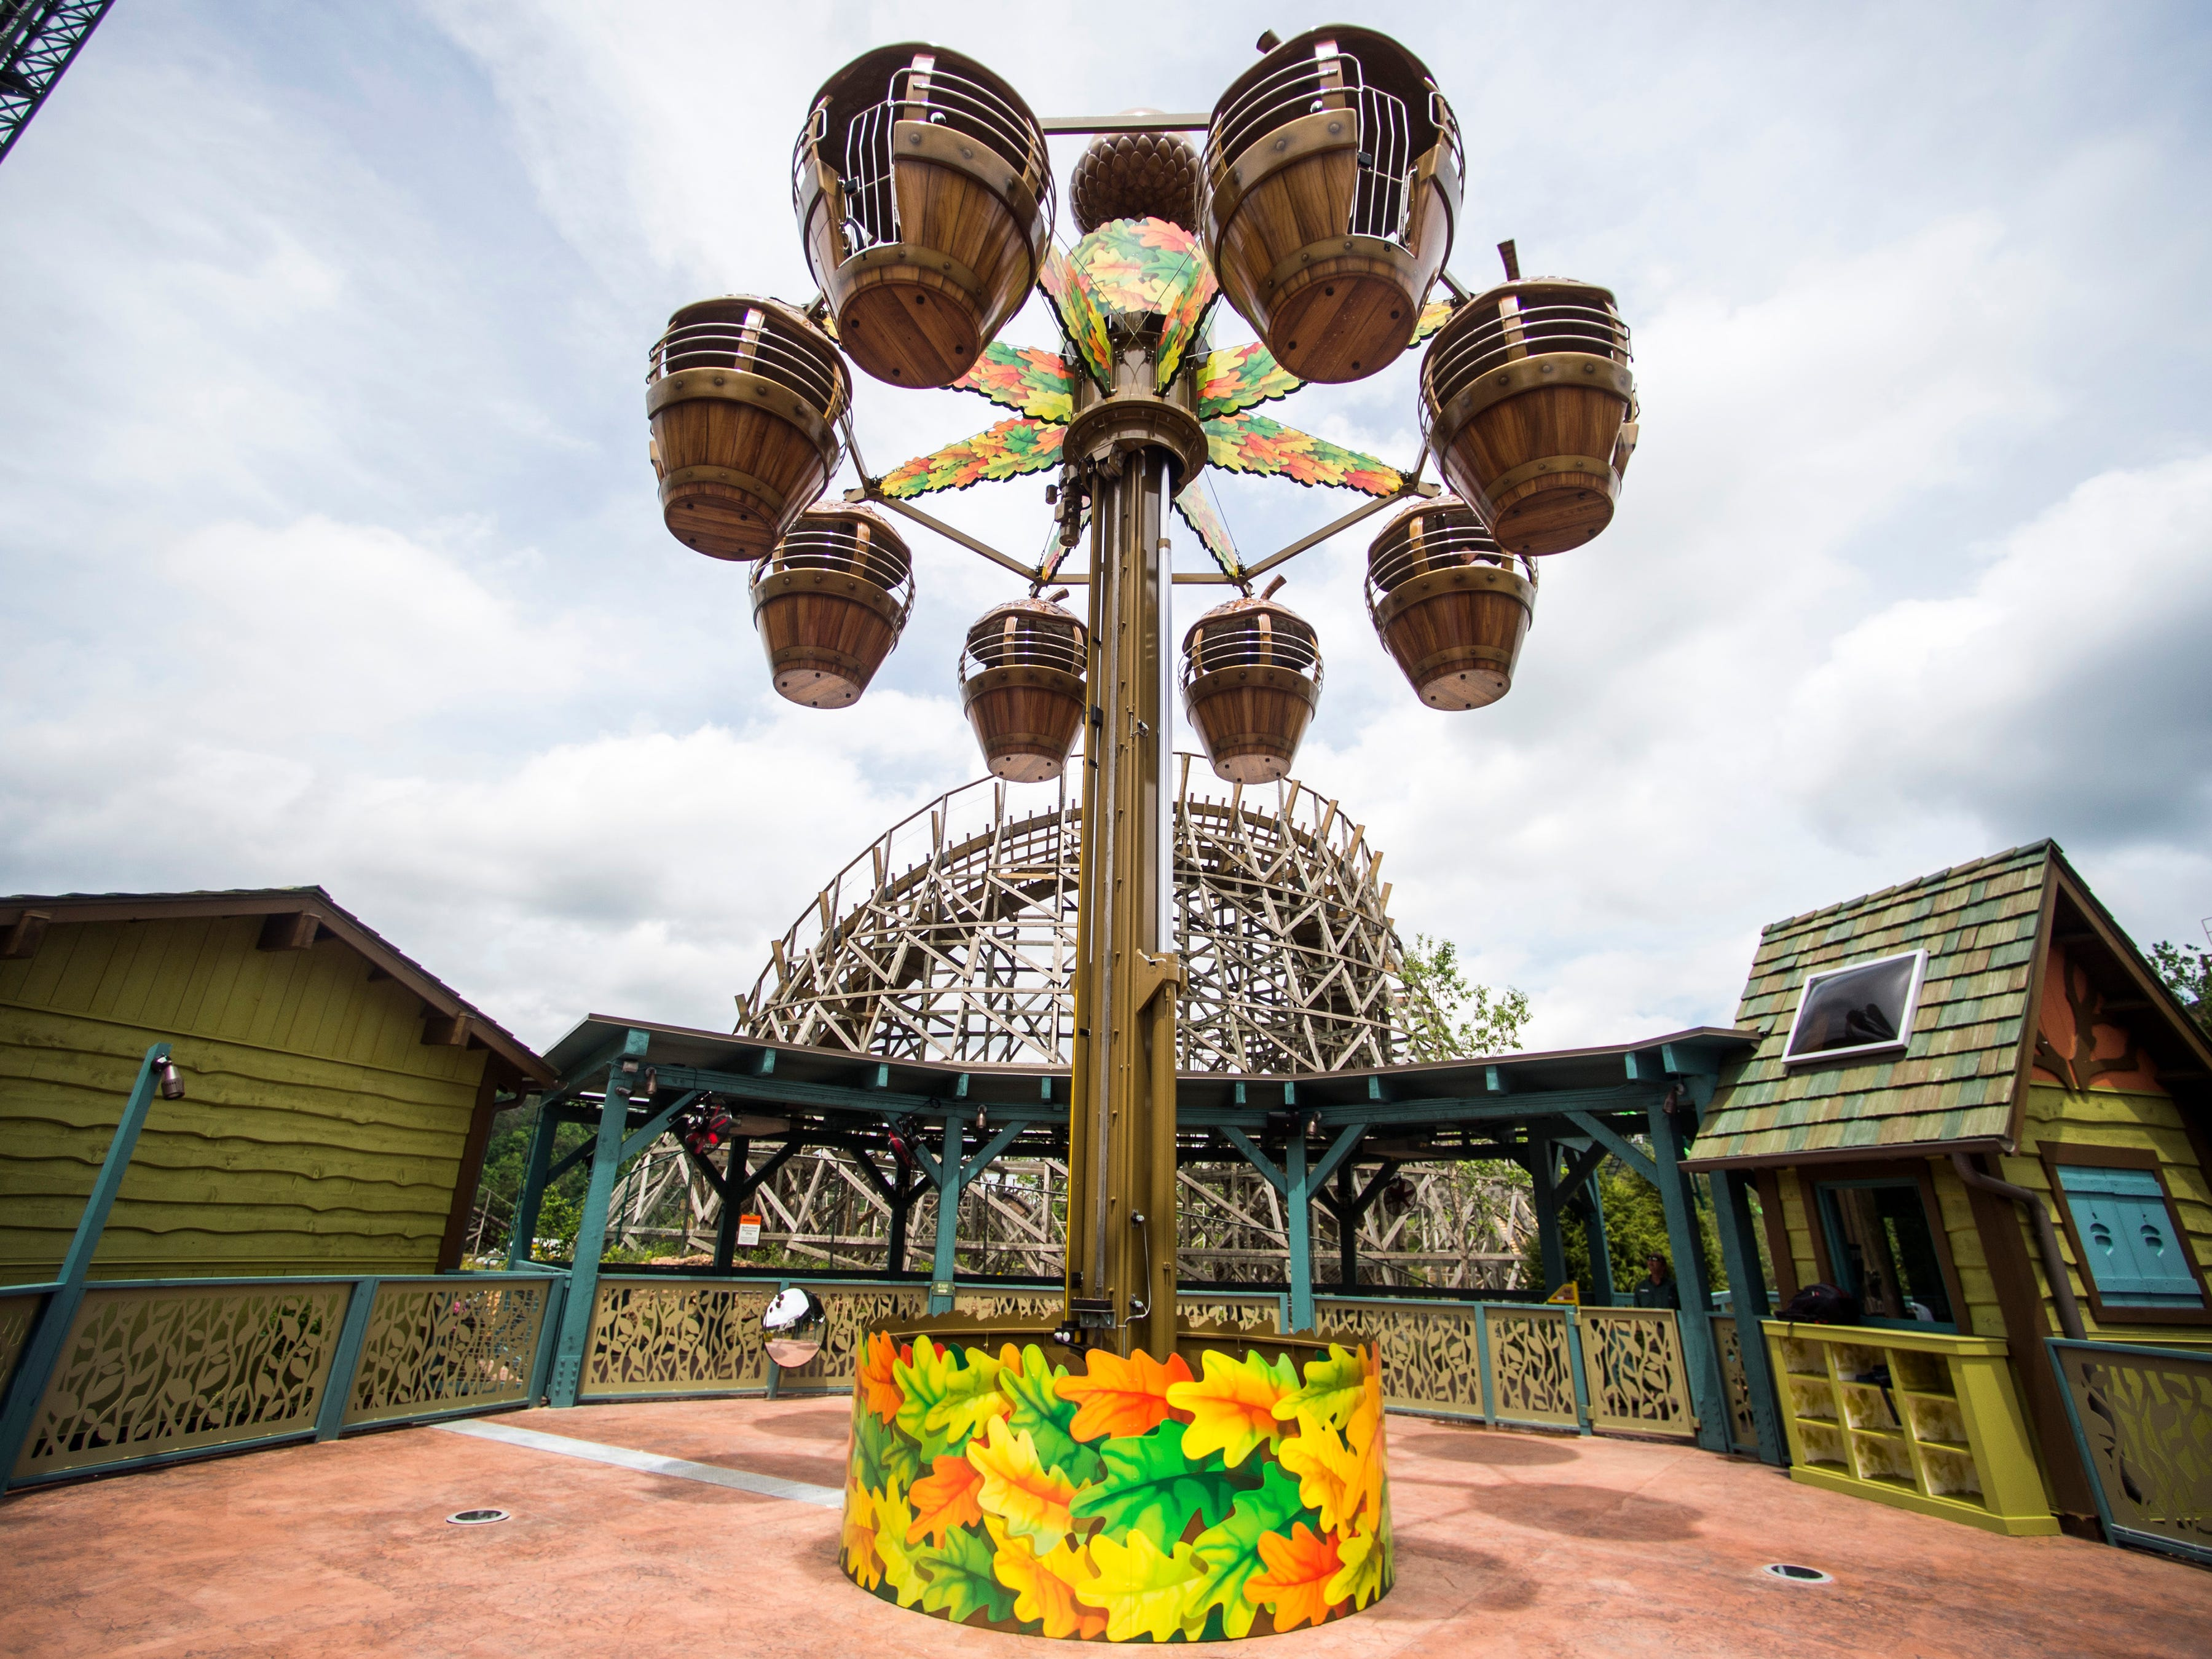 The Treetop Tower ride in Dollywood's new Wildwood Grove expansion on Friday, May 10, 2019.